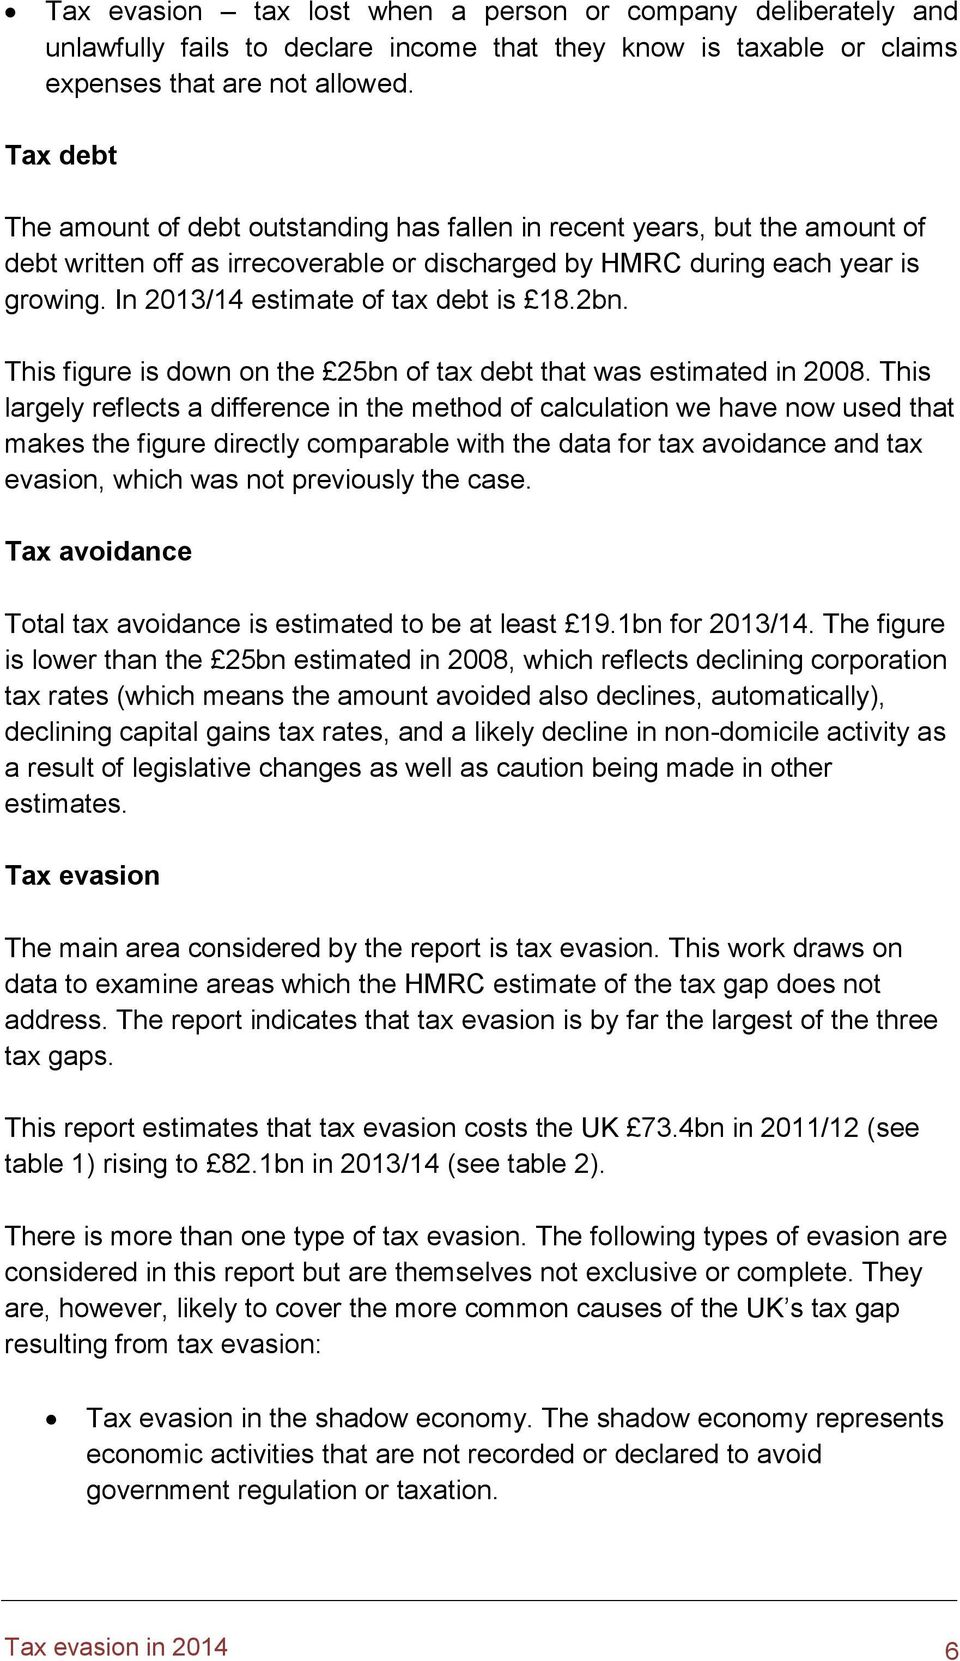 In 2013/14 estimate of tax debt is 18.2bn. This figure is down on the 25bn of tax debt that was estimated in 2008.